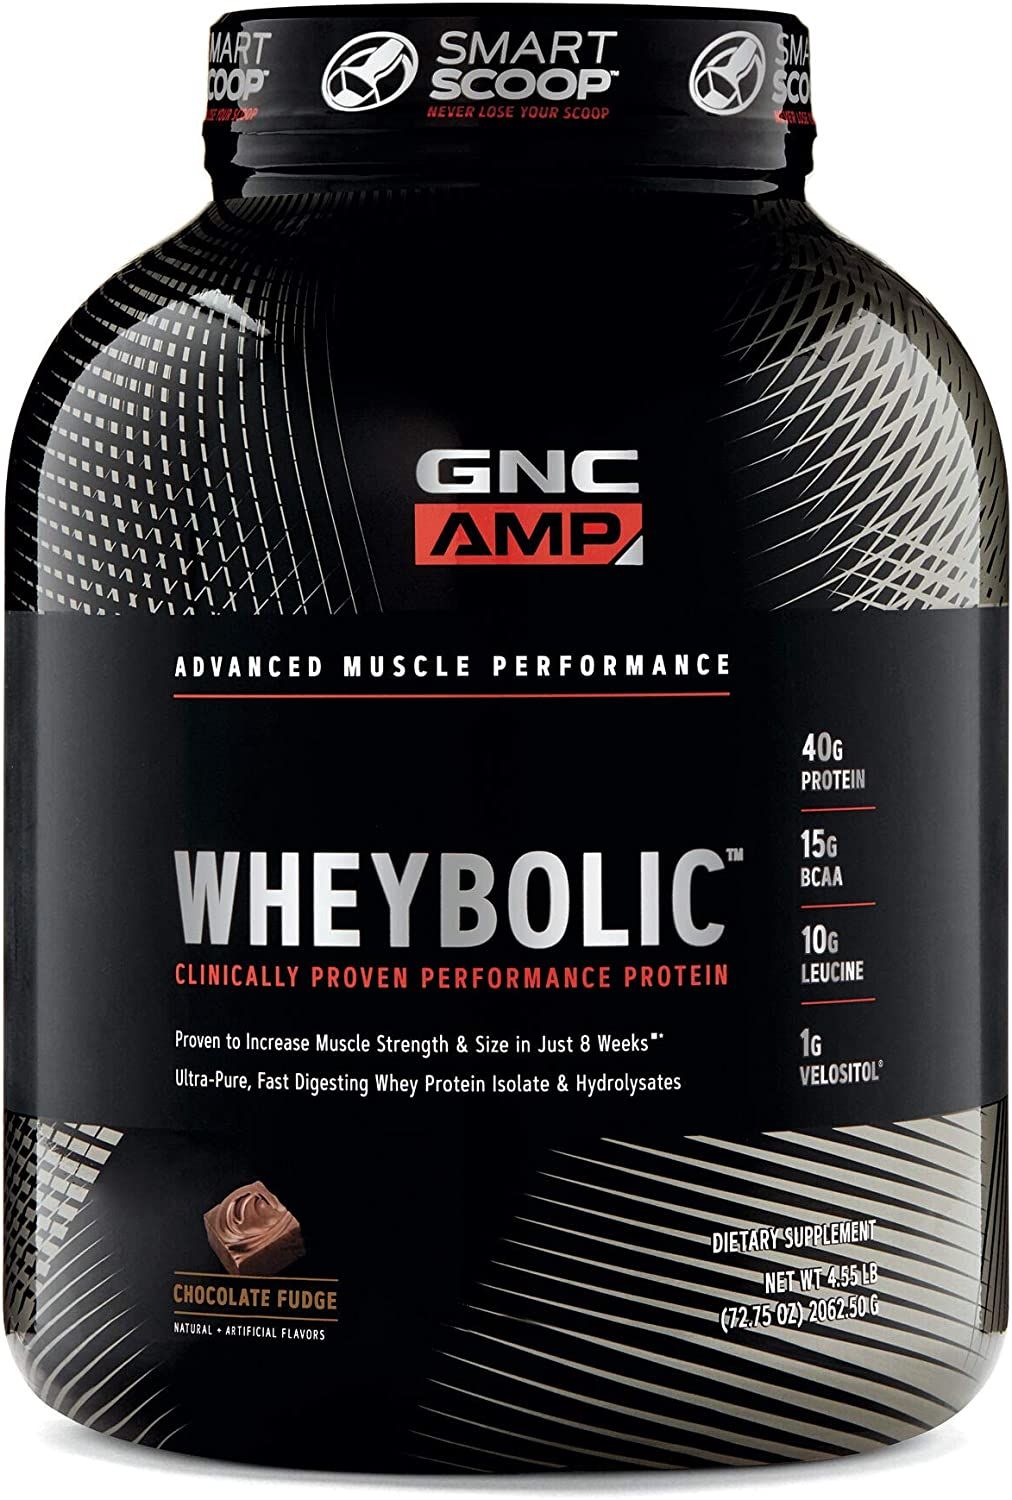 GNC AMP Wheybolic Whey Protein Powder - Chocolate Fudge, 33 Servings, Contains 40 Protein, 15g BCAA, and 10g Leucine Per Serving